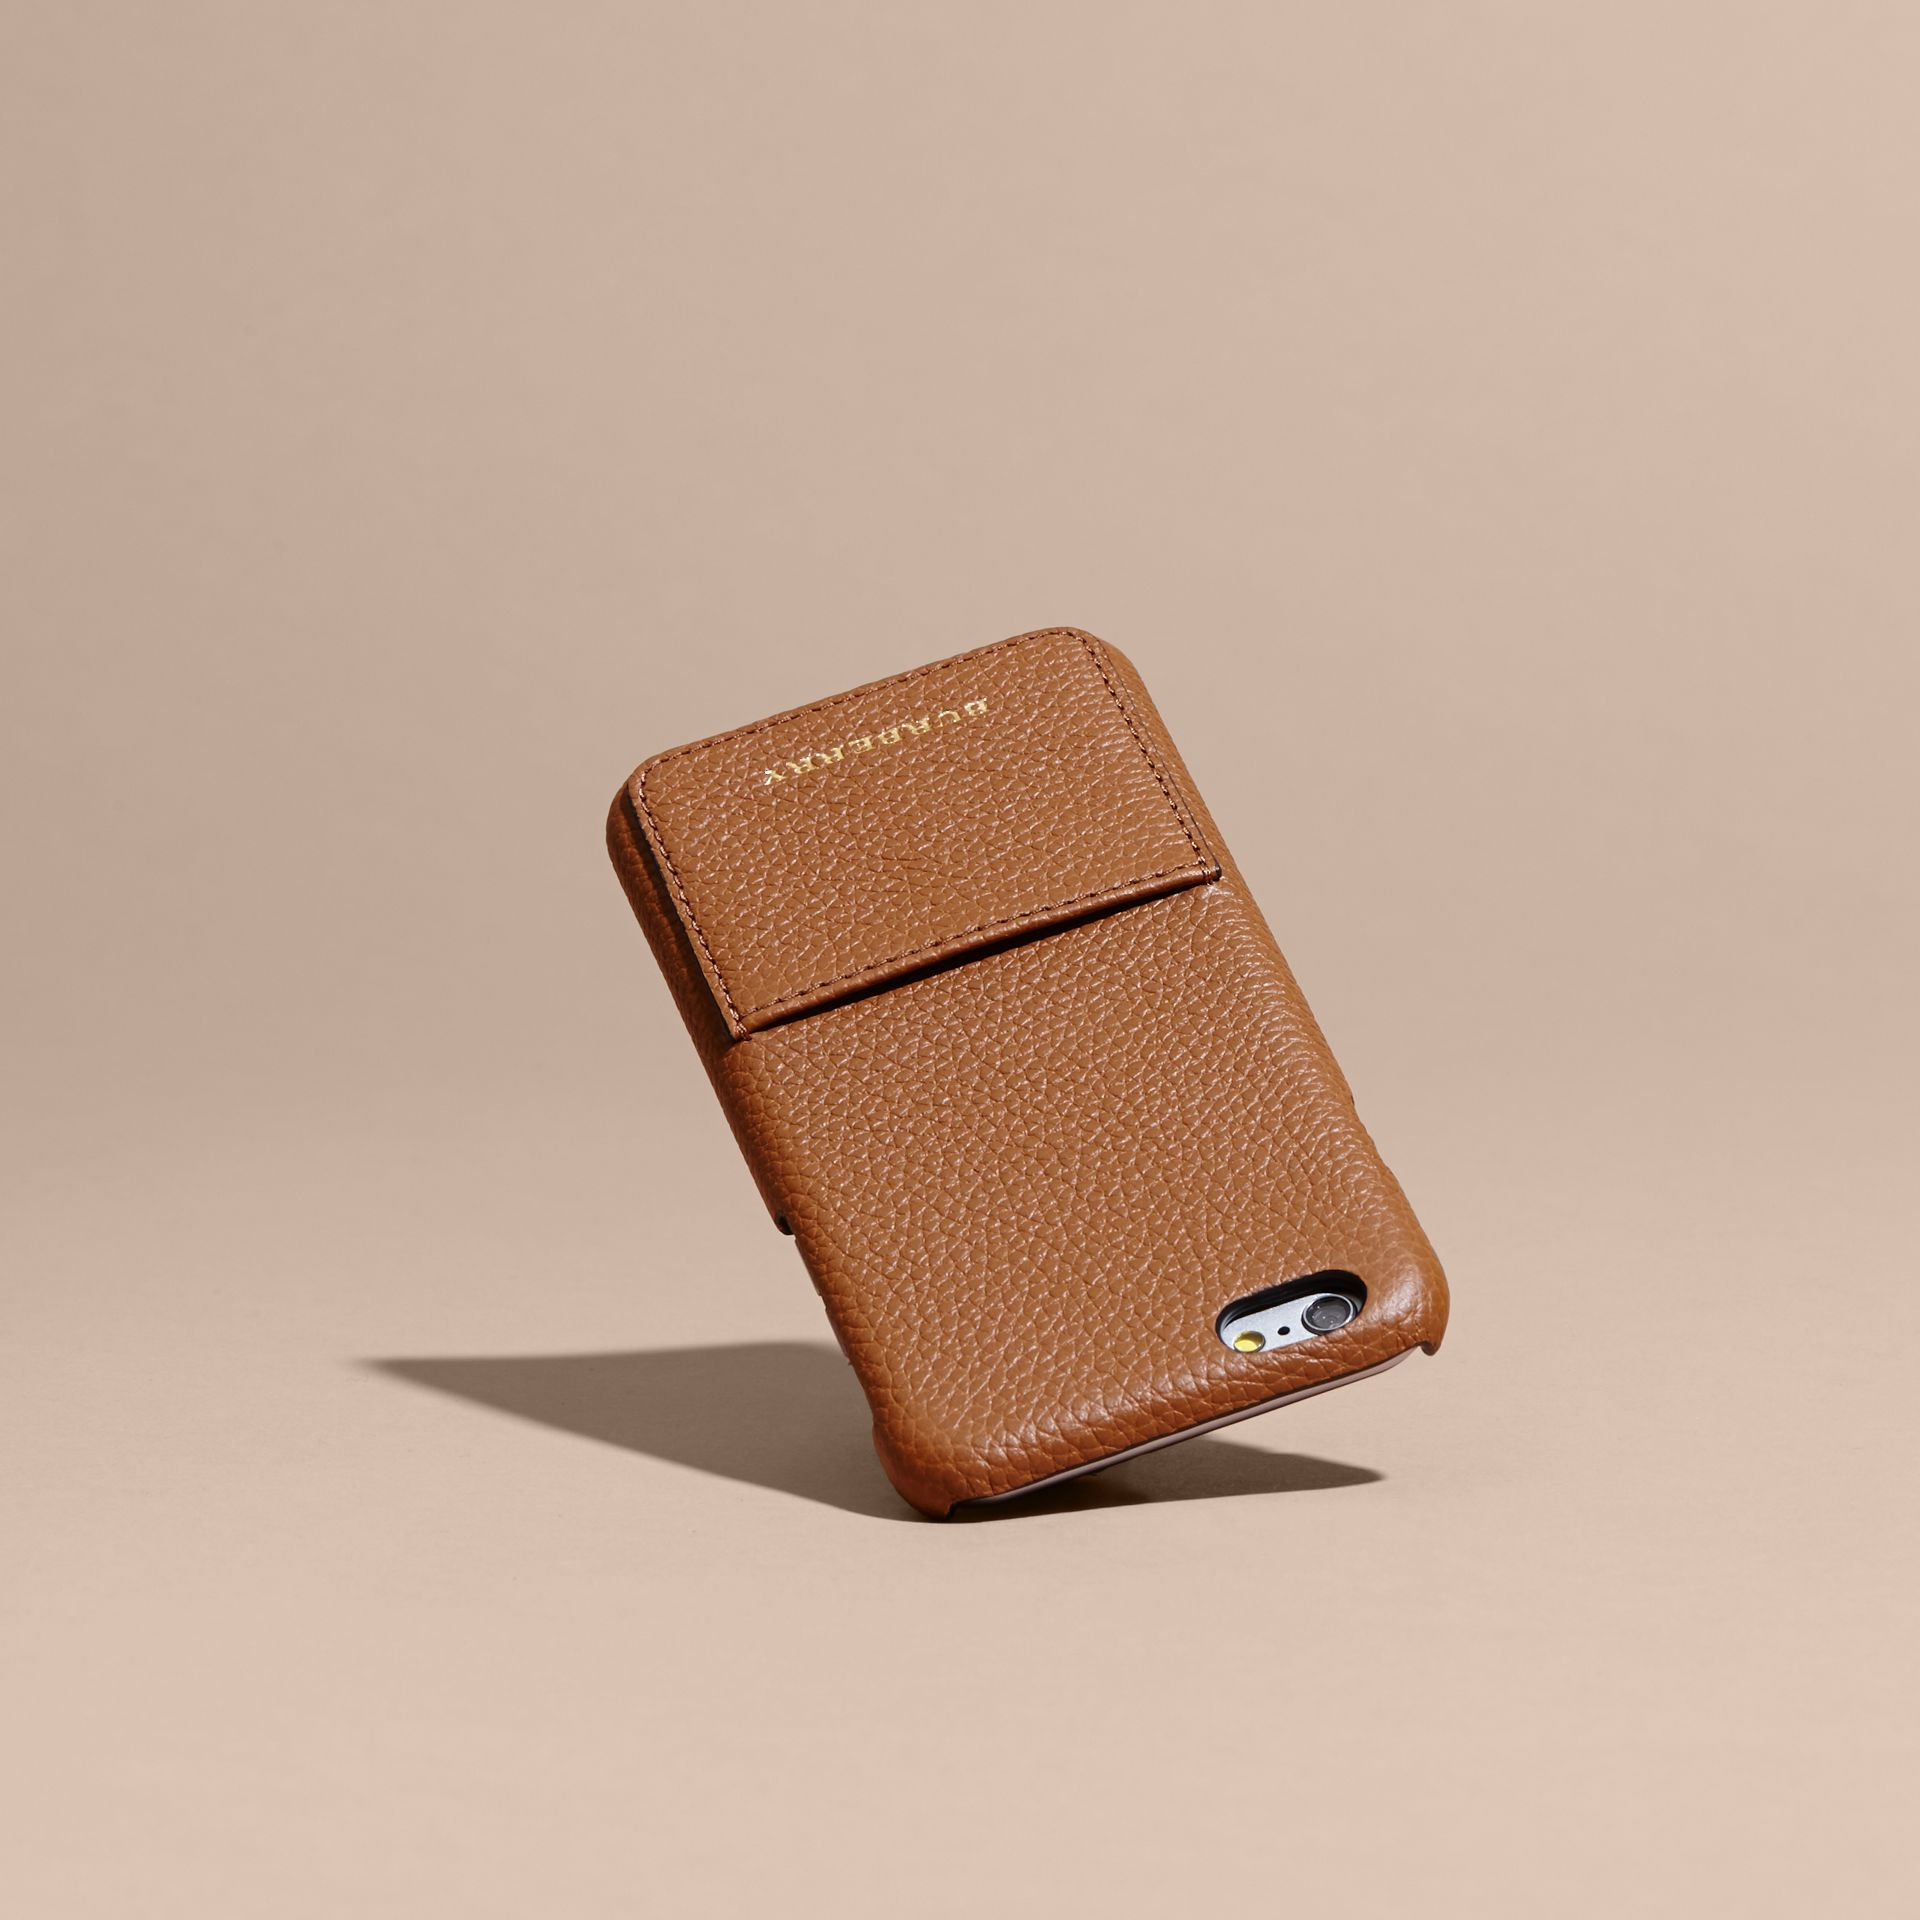 Grainy Leather iPhone 6 Case - gallery image 4